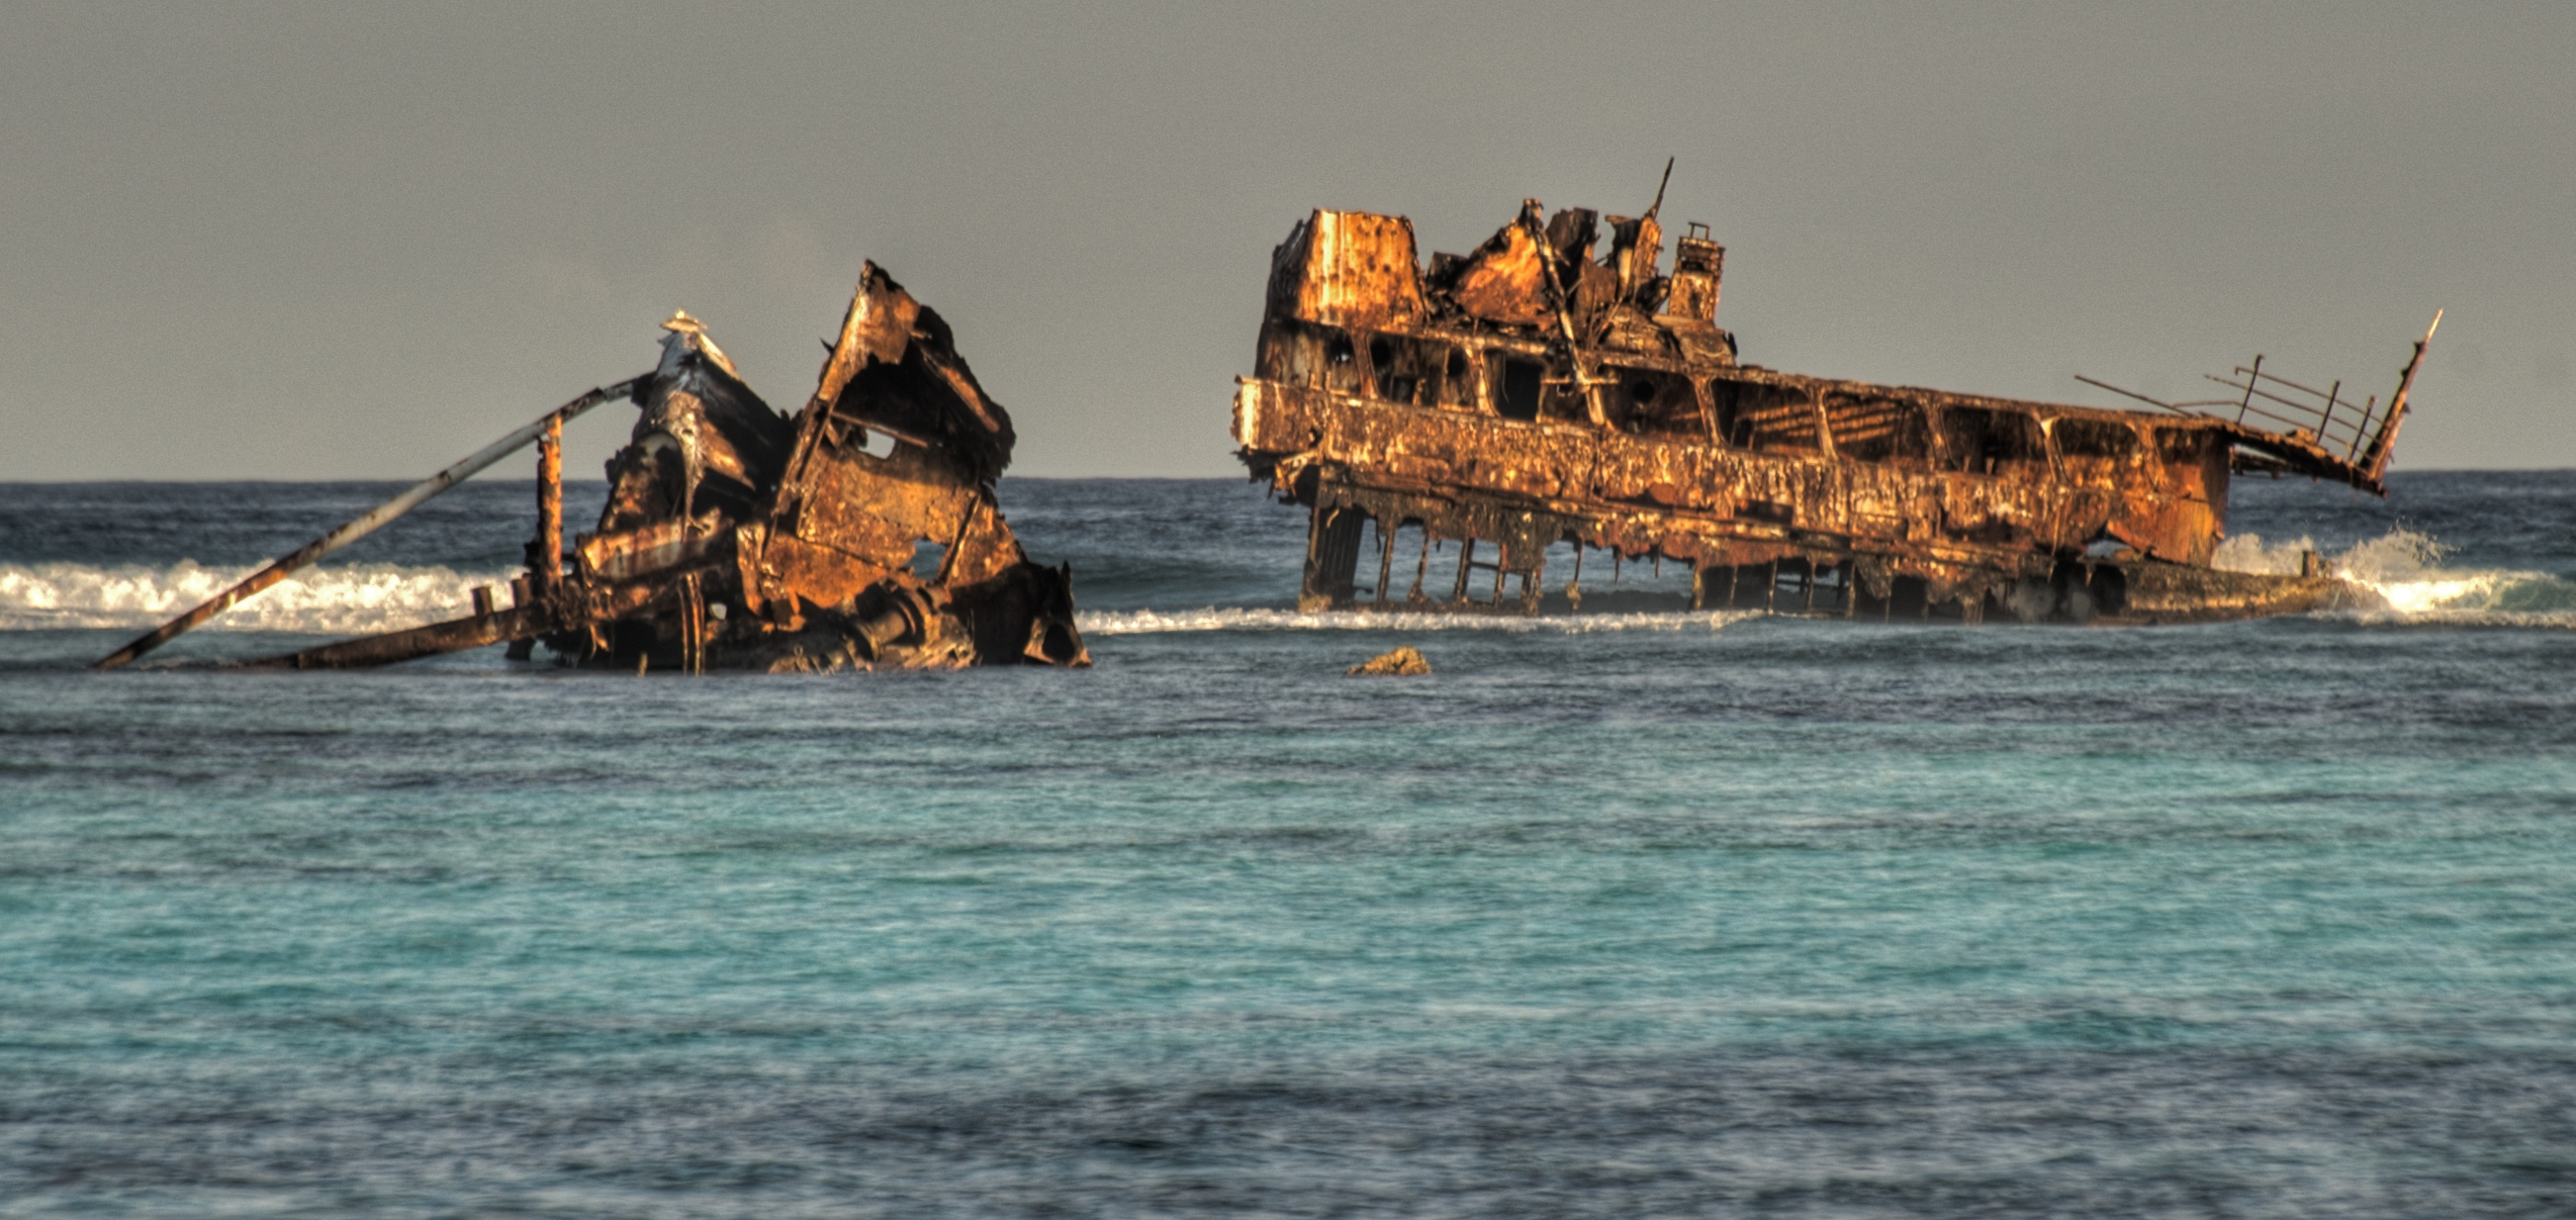 File:Old shipwreck Astron.jpg - Wikimedia Commons